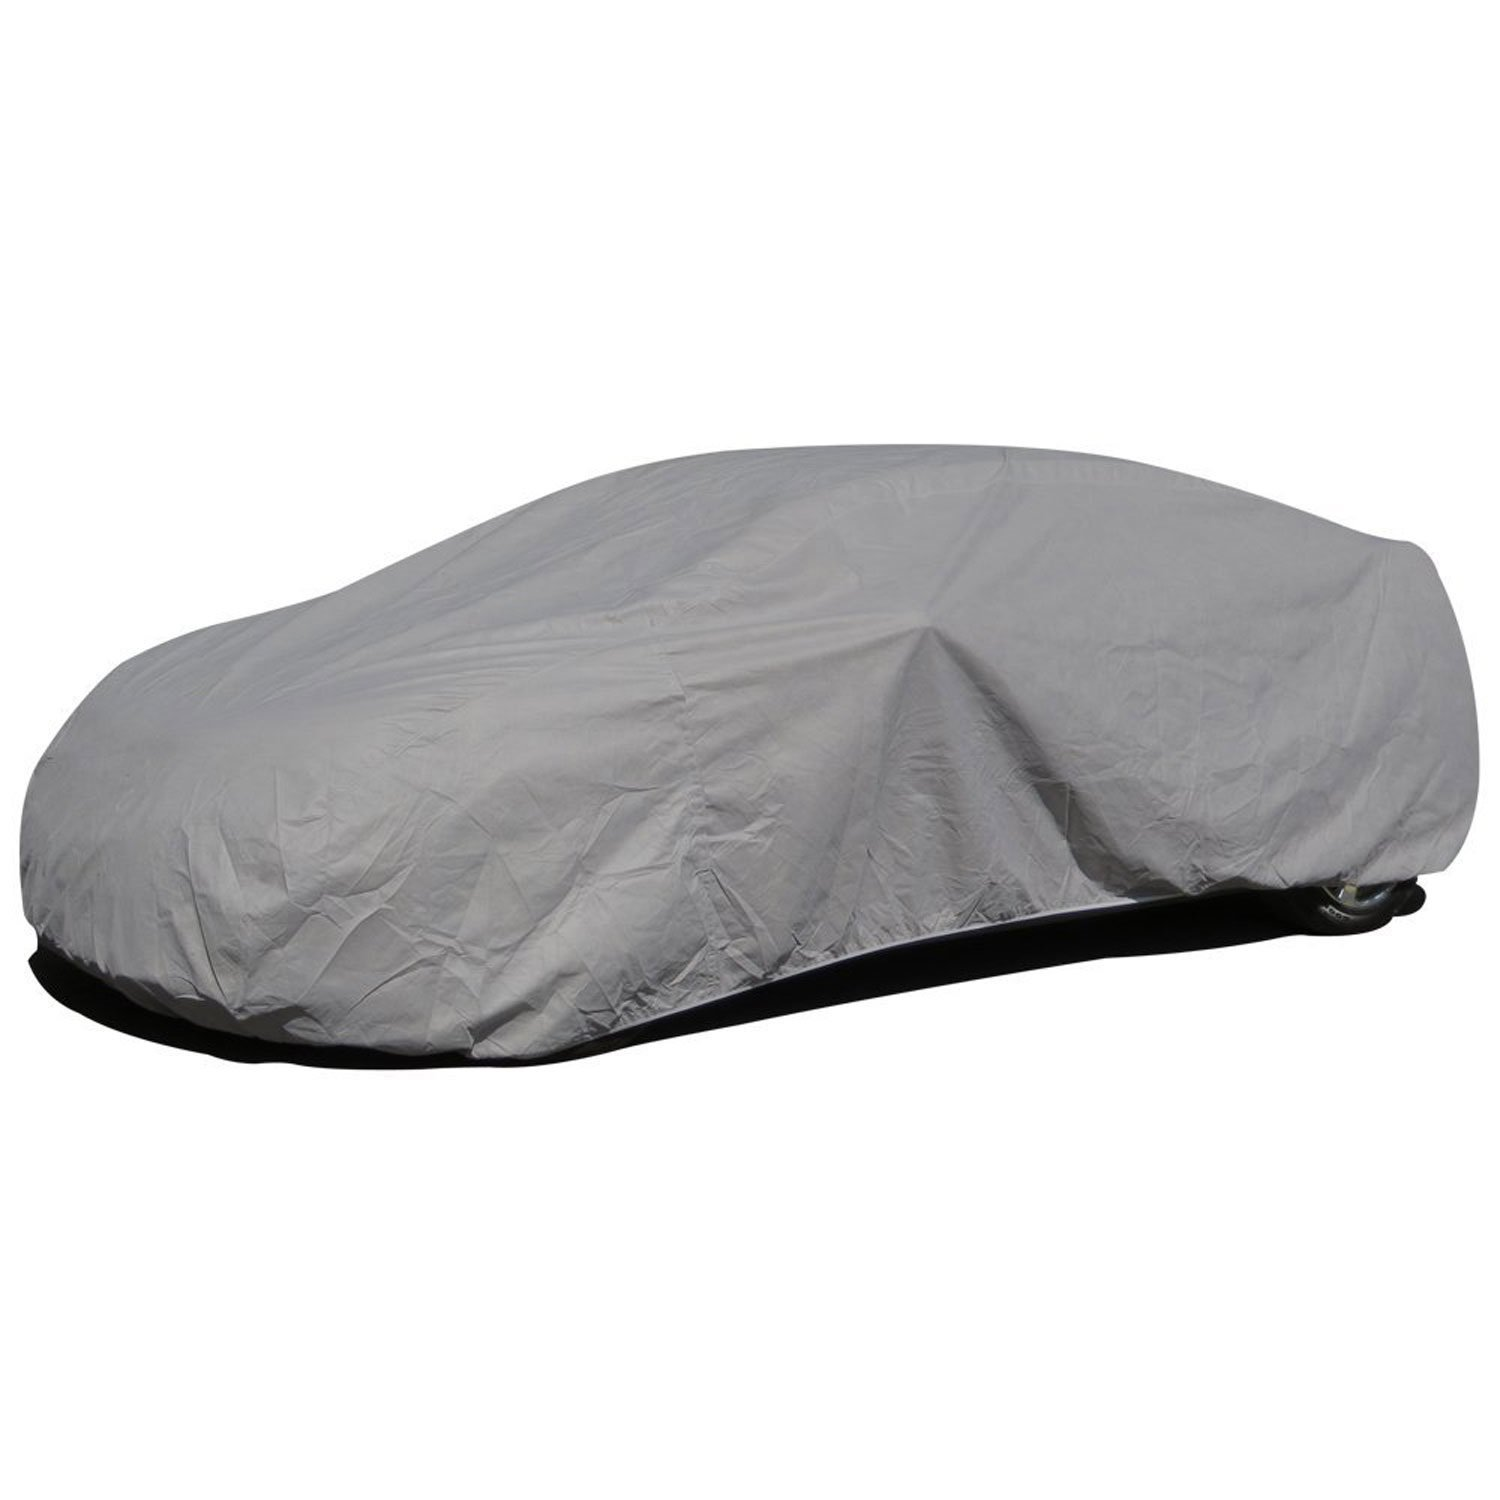 Fits 167 Long Station Wagon Cover Budge SB-2 Grey Size S2 Renewed